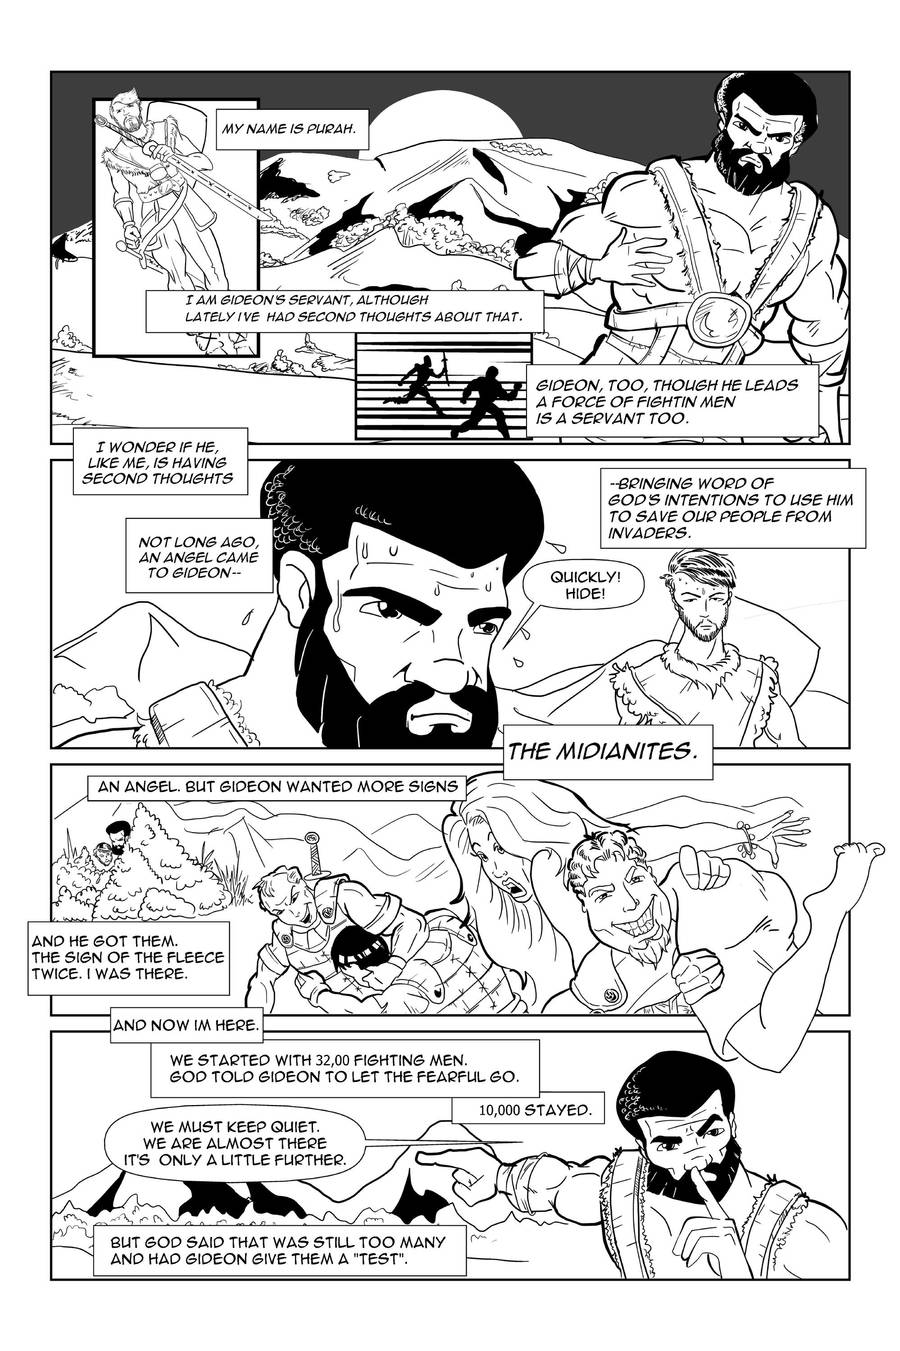 A Sword for Lord and for Gideon-page 1 by officerM